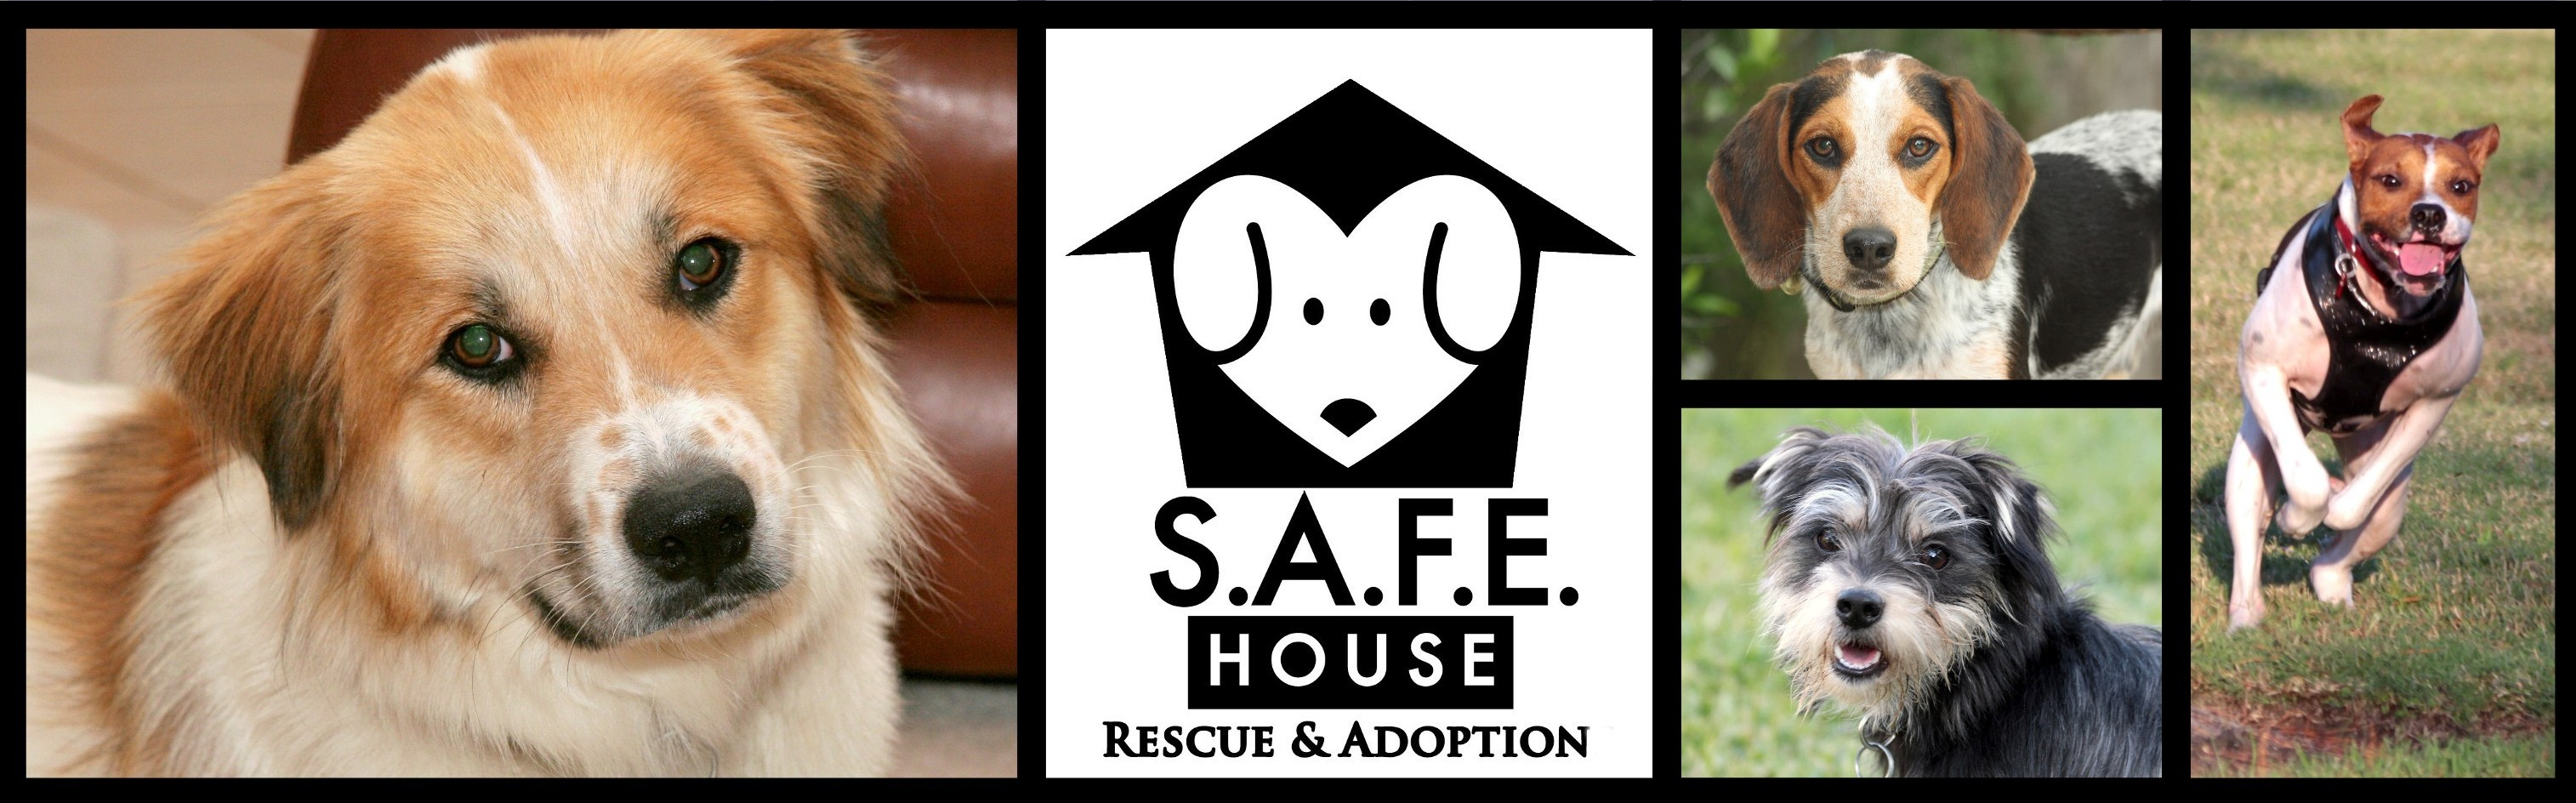 S.A.F.E. House Rescue and Adoption